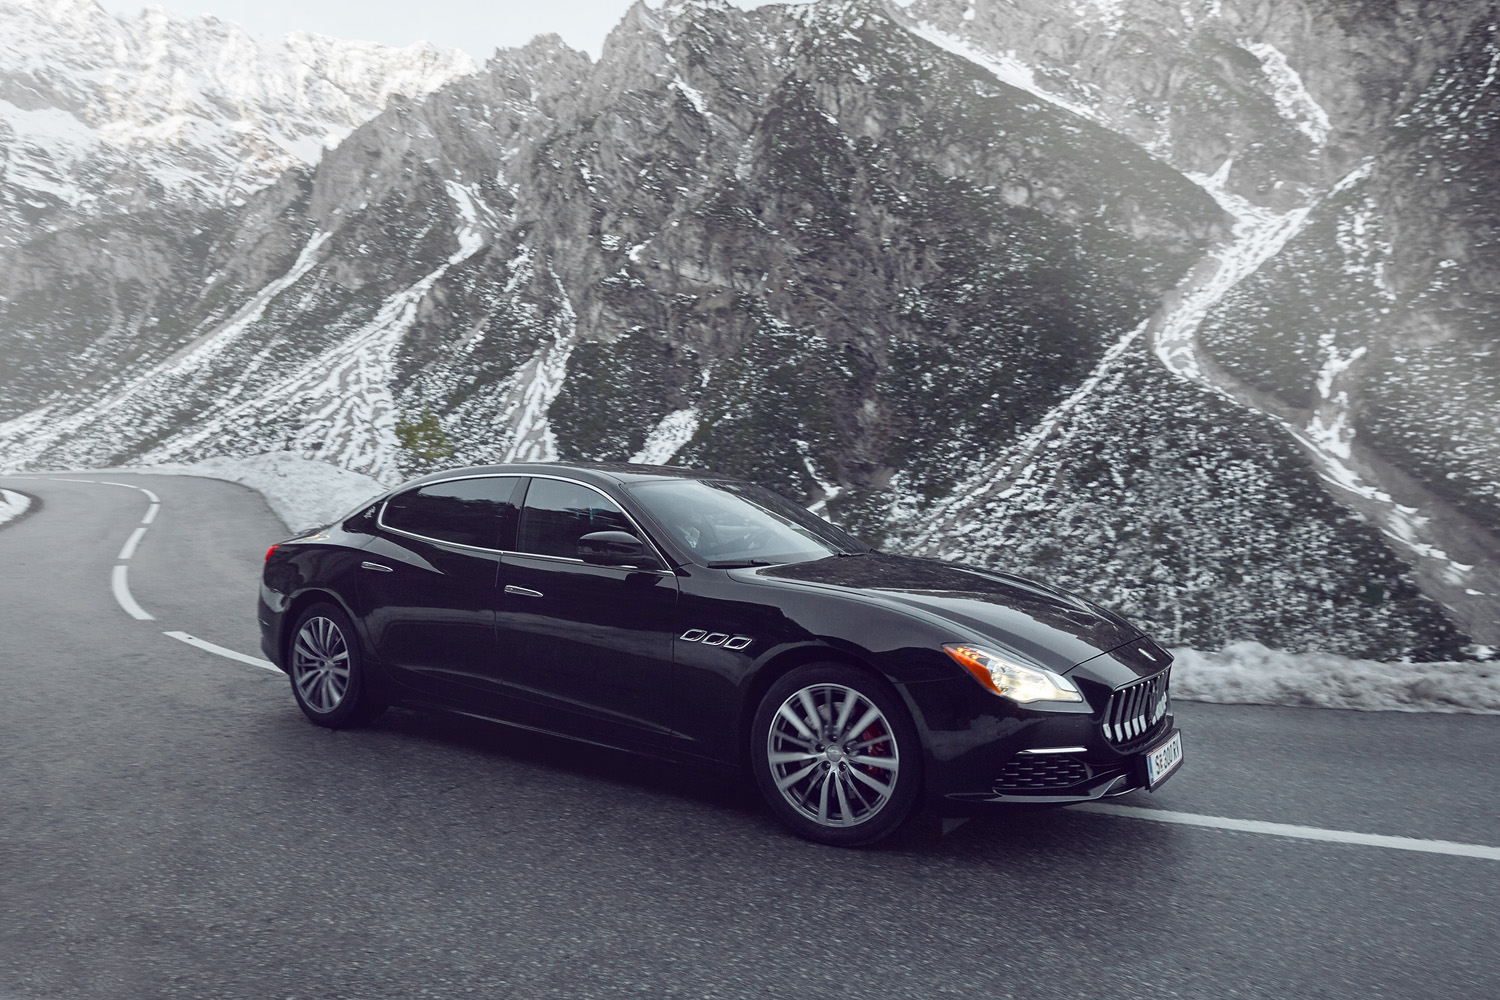 Maserati in the Alps 4 by Marc WITTKOWSKI